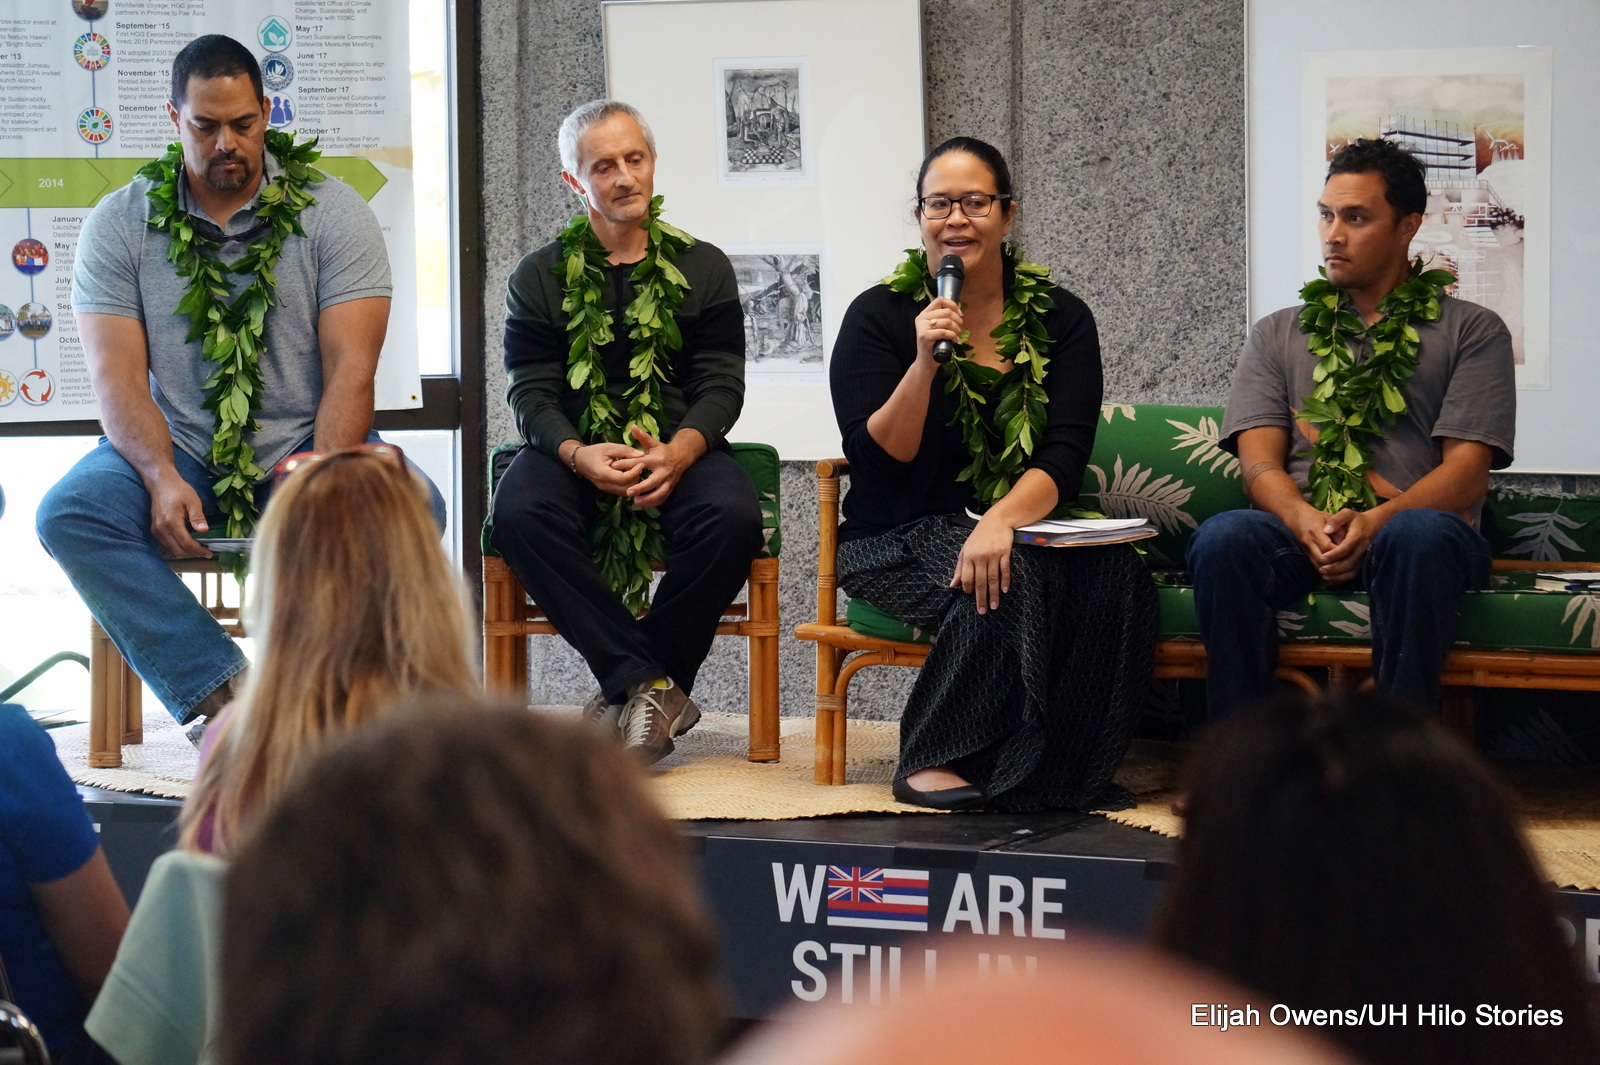 Sustainability panel at UH Hilo discusses indigenous ways of knowing and western empirical science